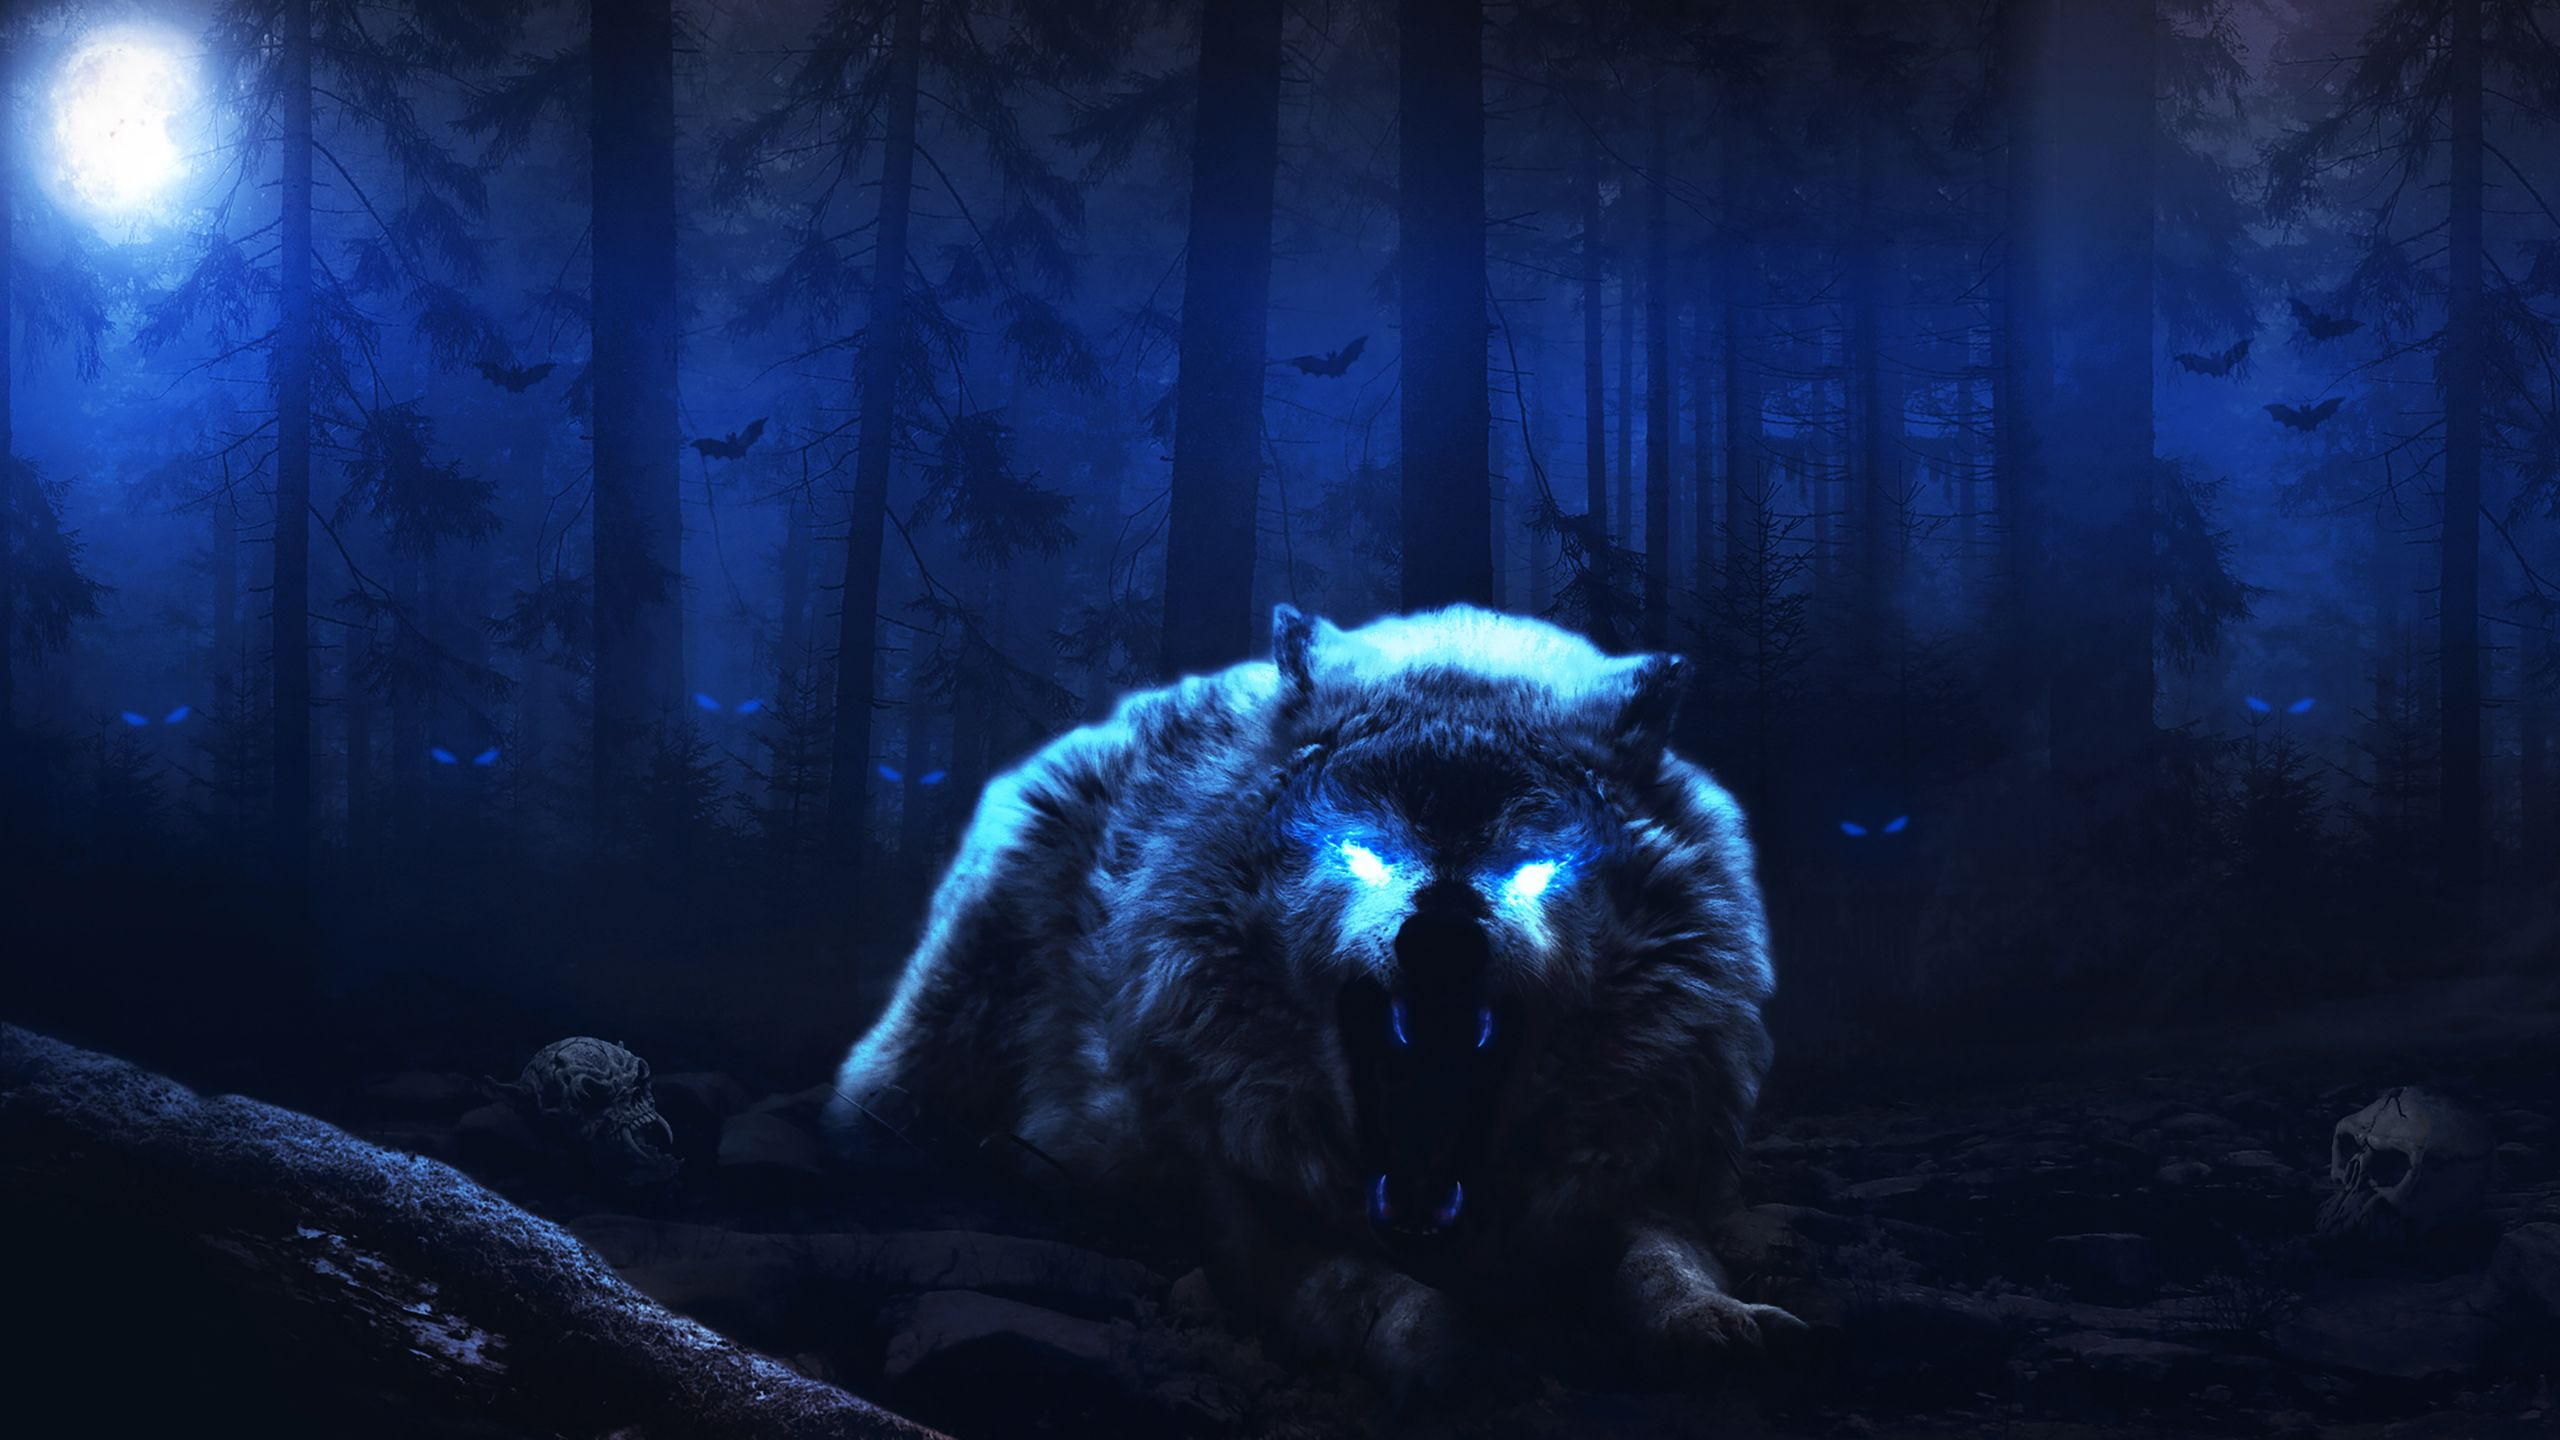 Creepy Wolf Wallpapers - Top Free ...